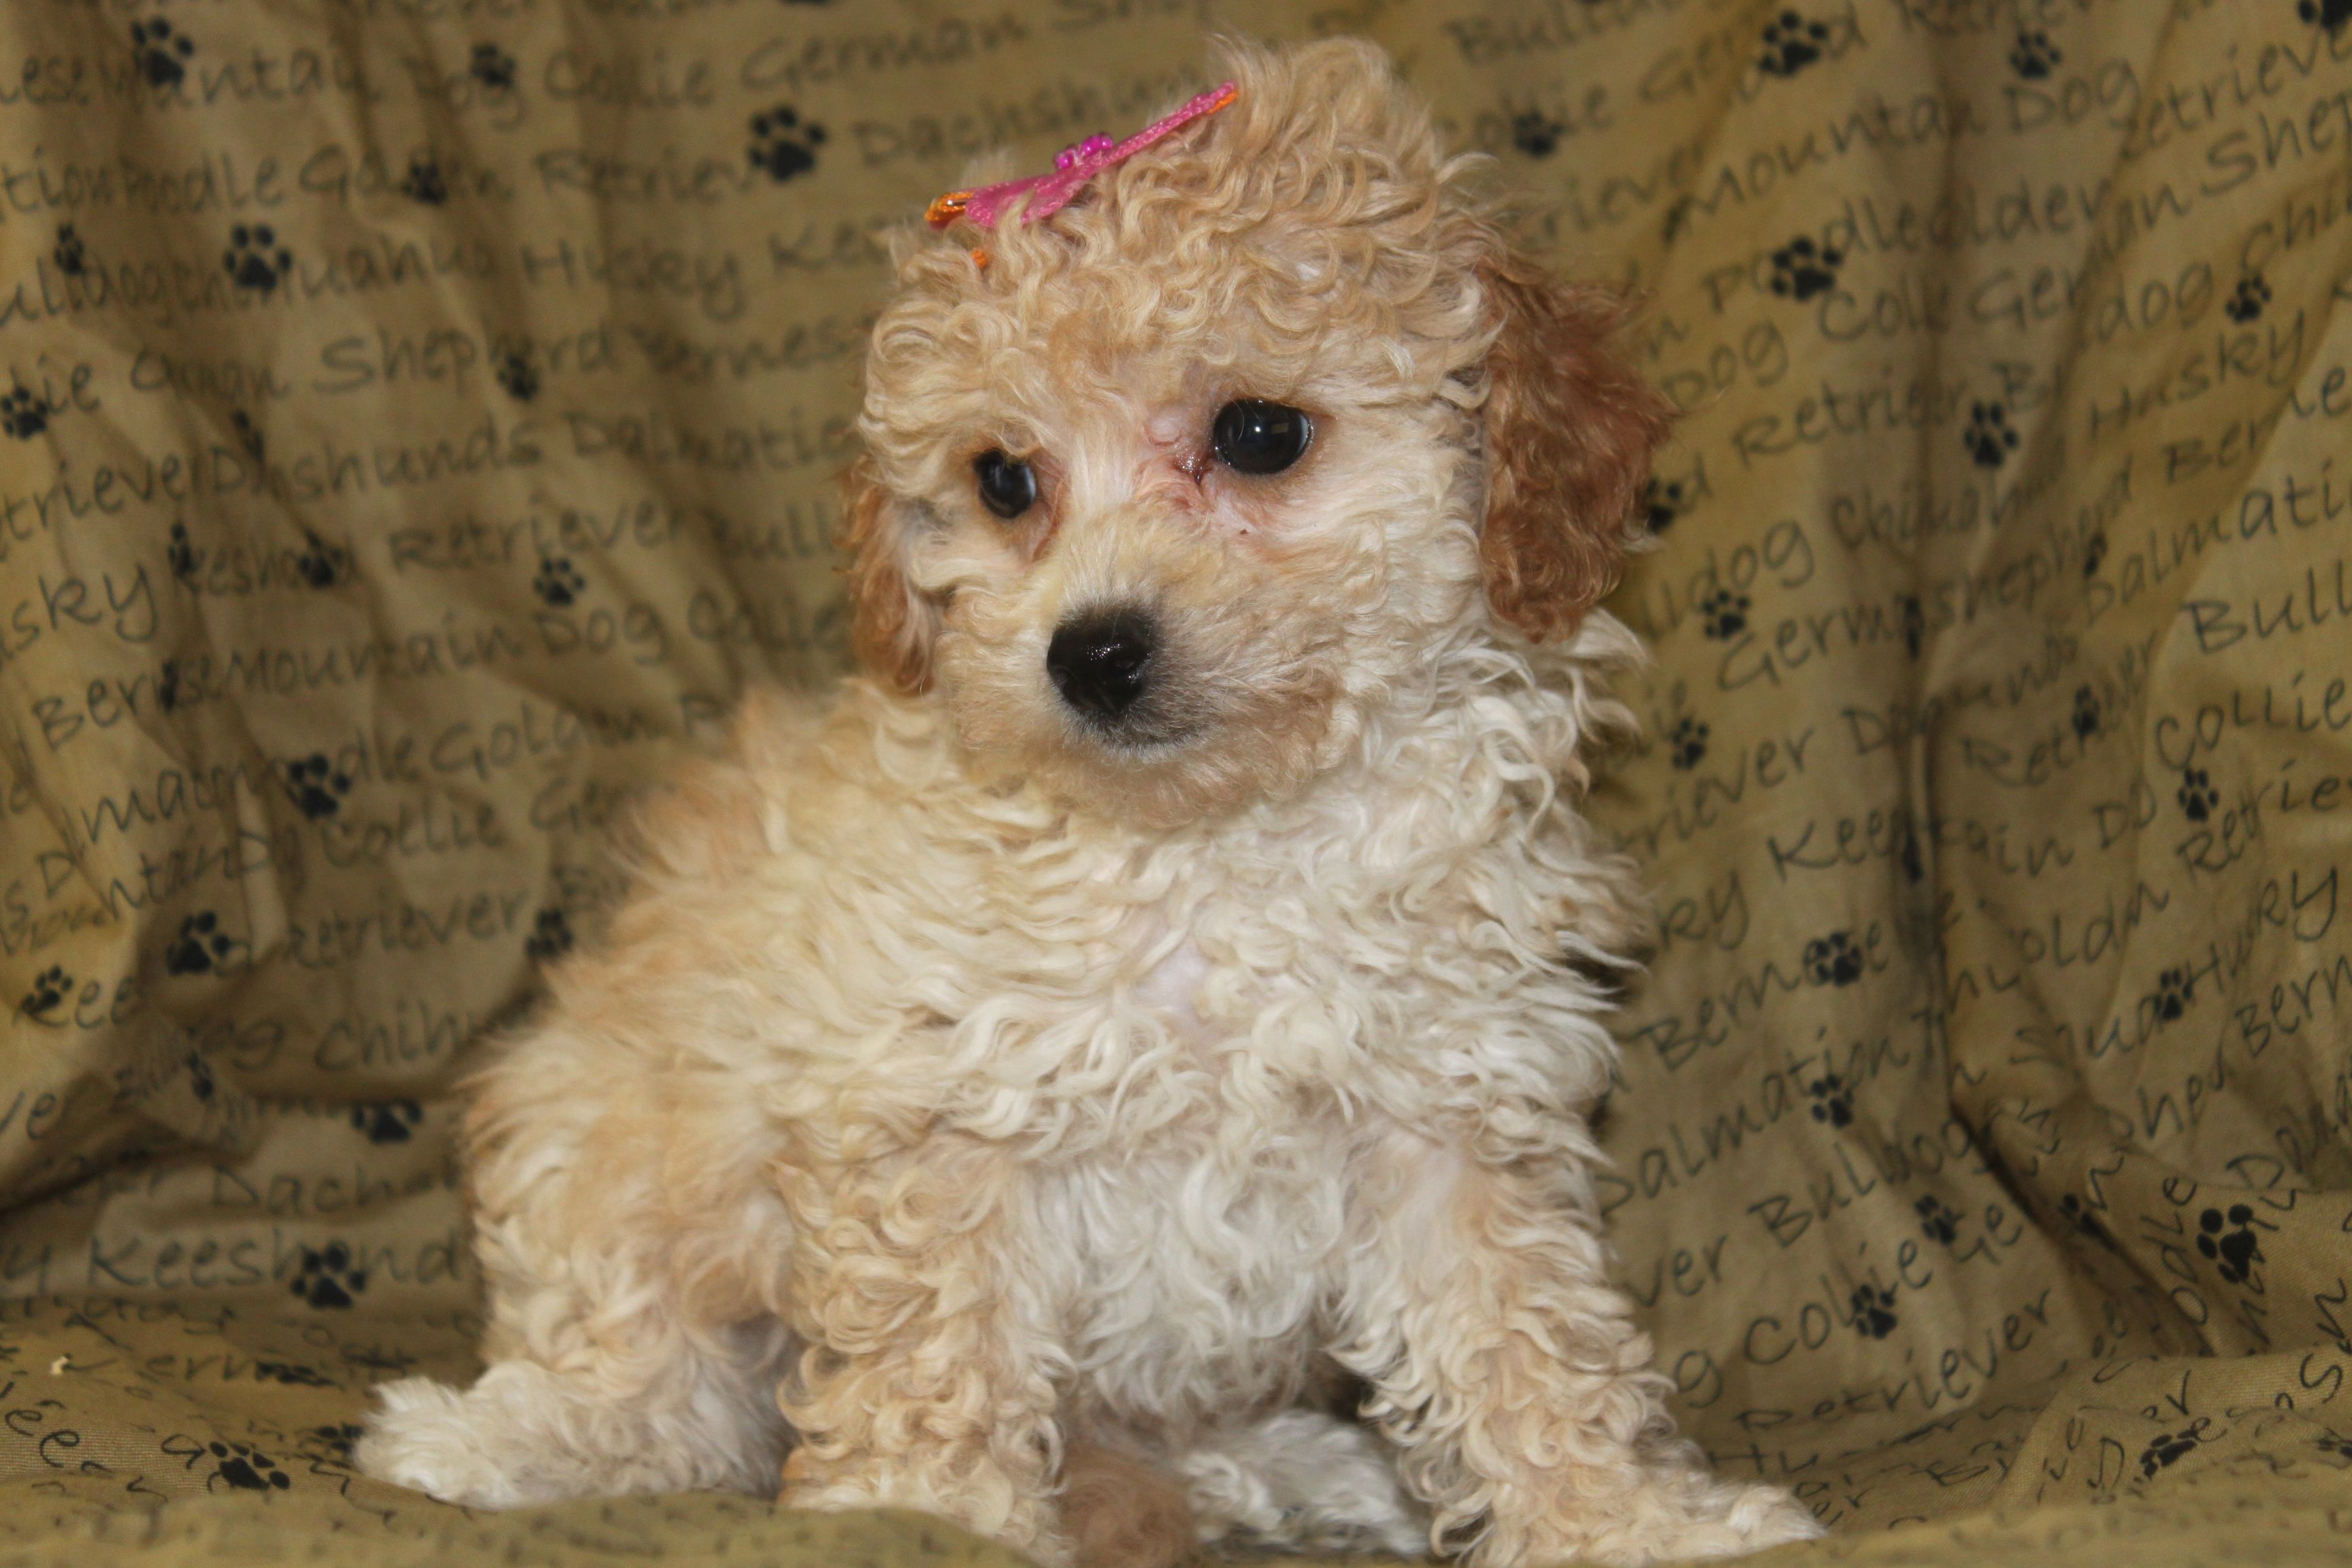 Poo Puppies For Sale In Shippensburg Pennsylvania Http Www